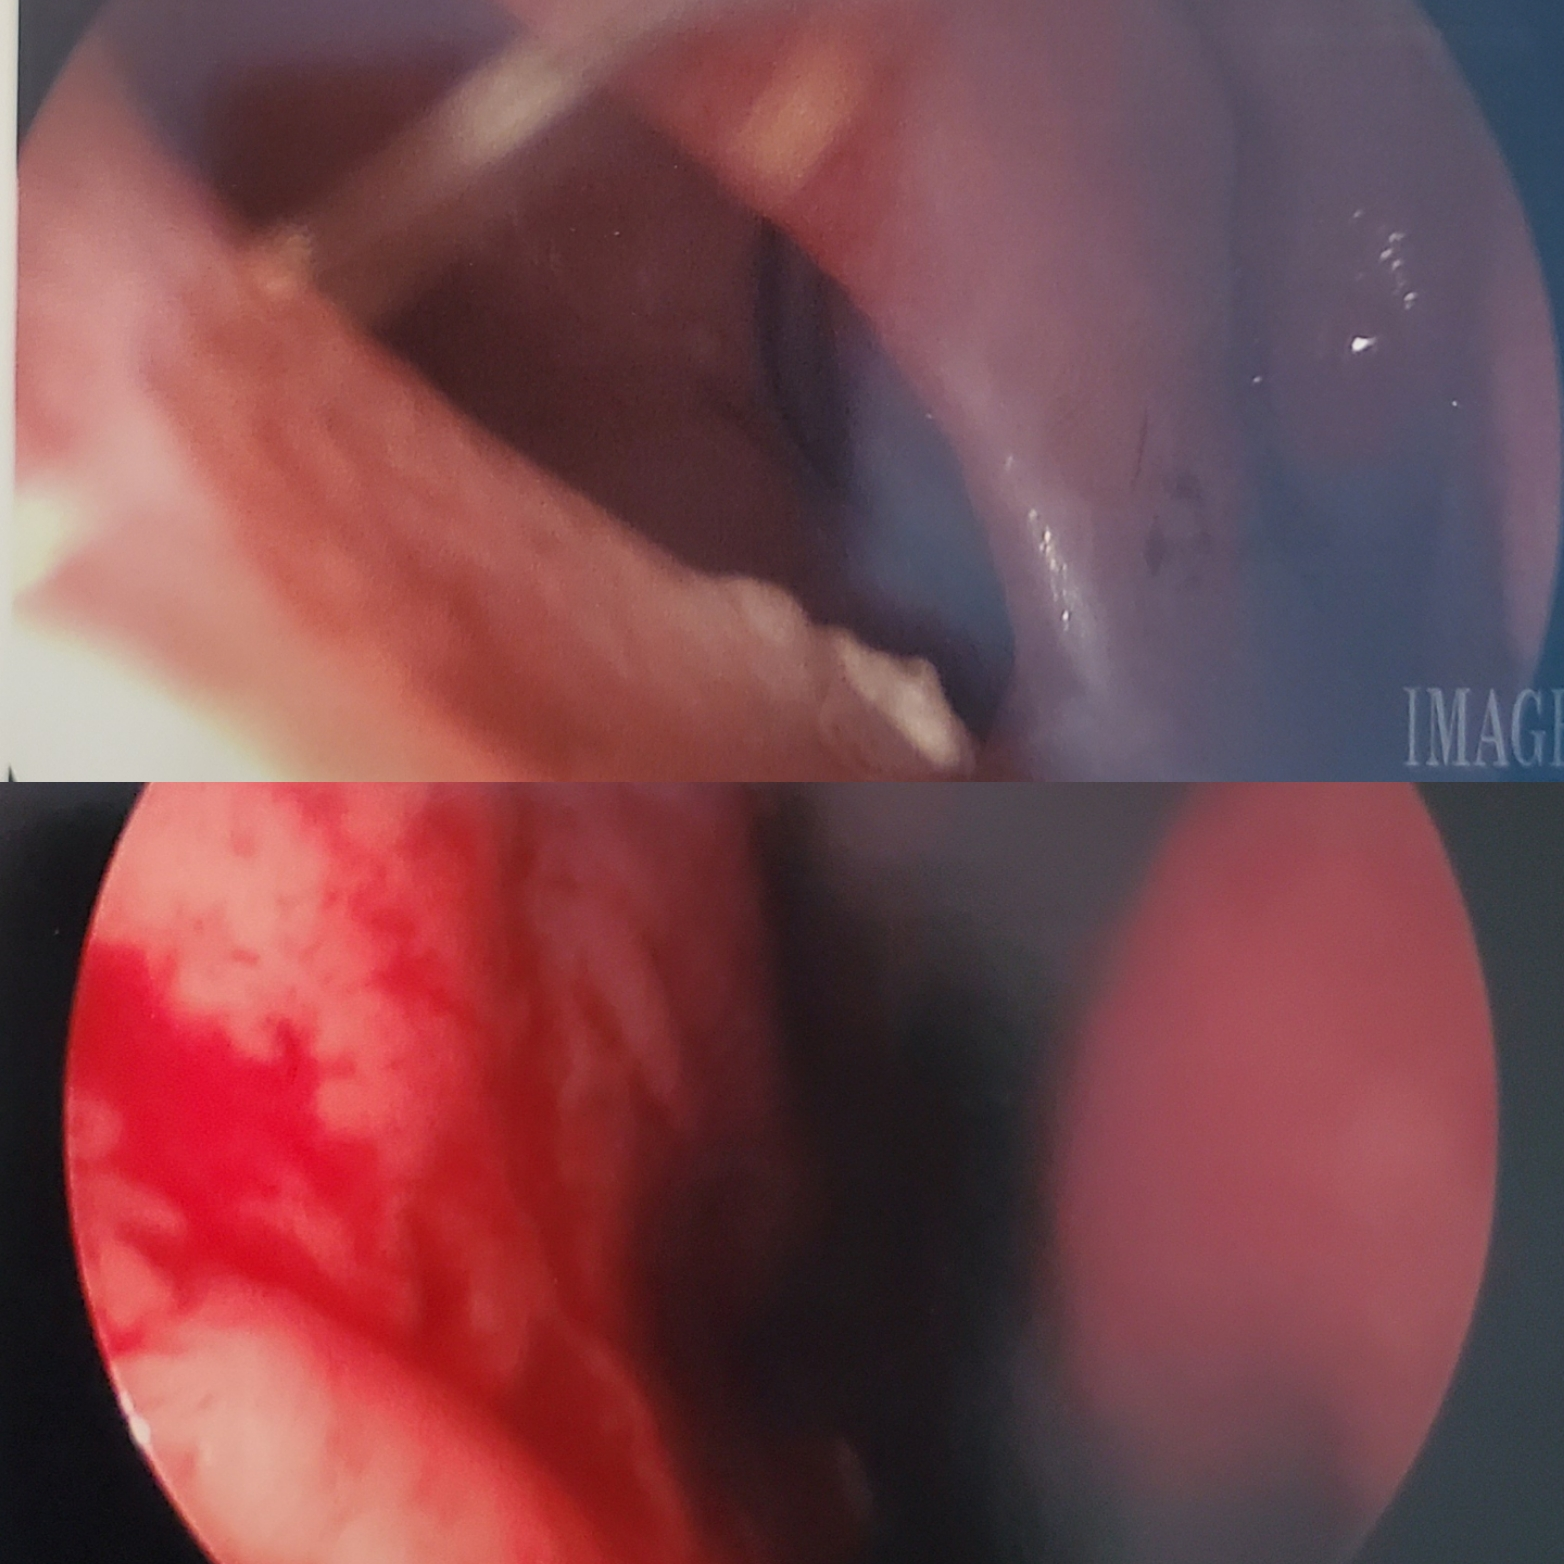 Female Septal Perforation Before and After